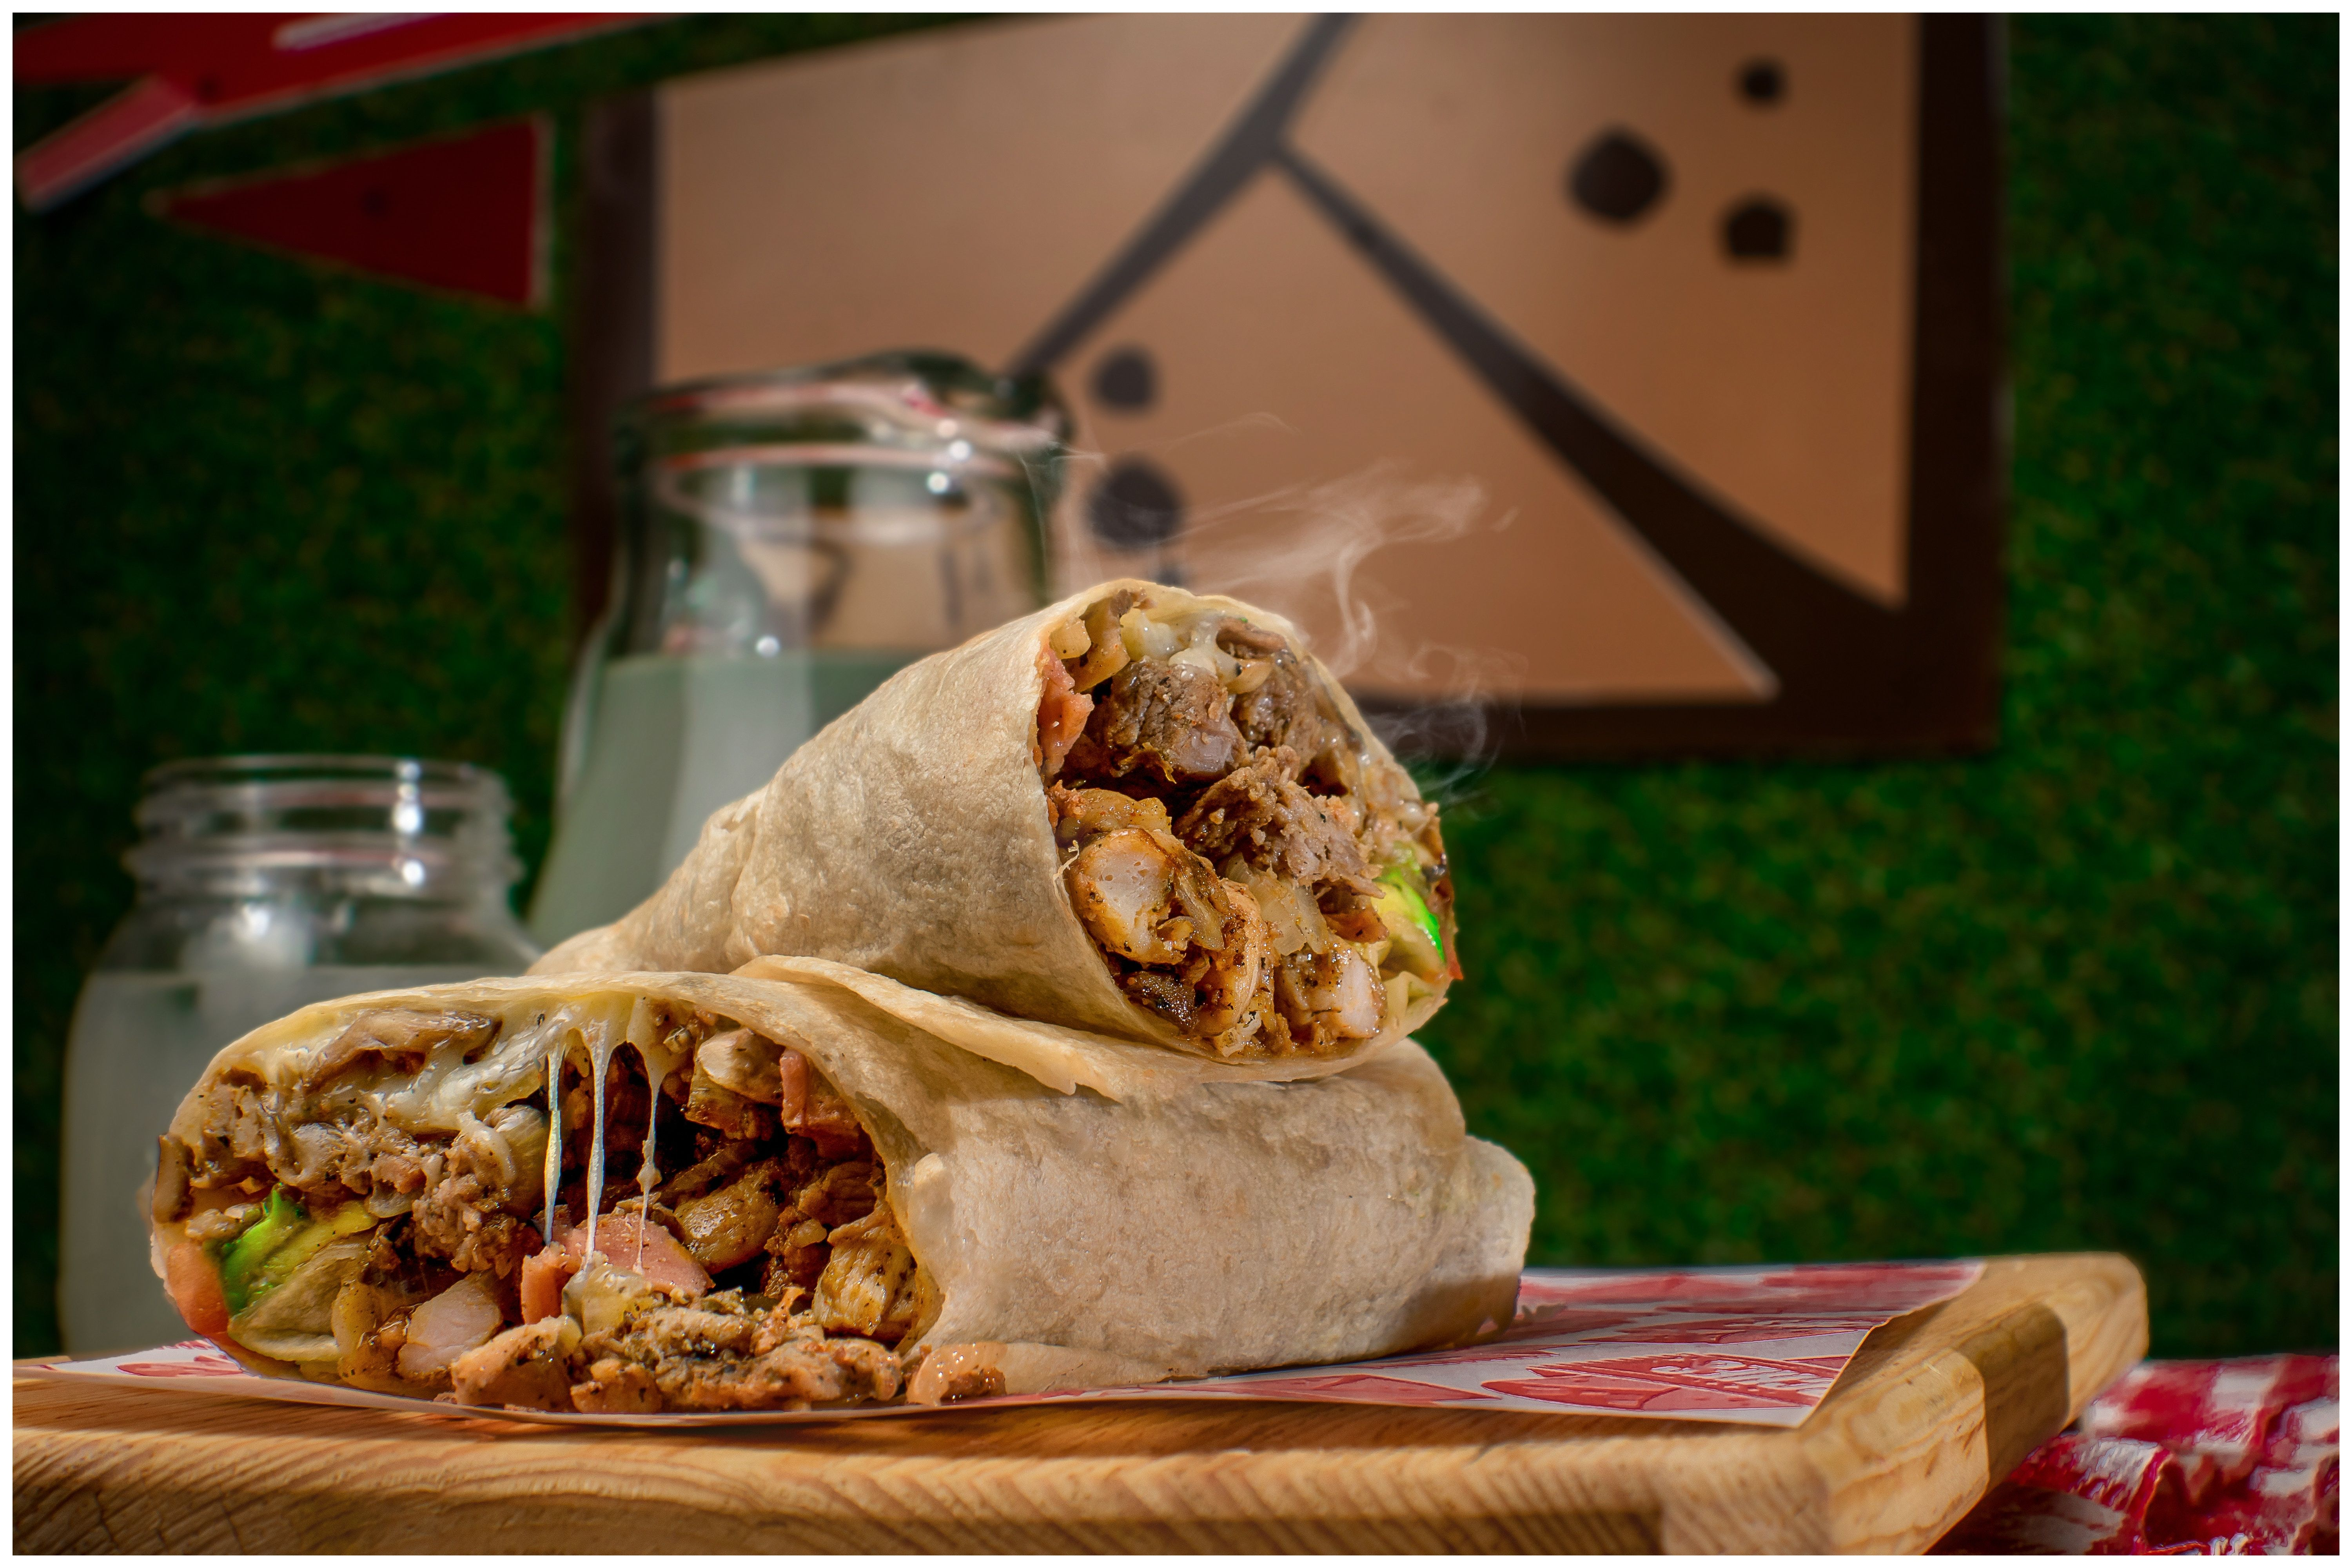 Chipotle Is Giving Out $1 Million Worth of Free Burritos